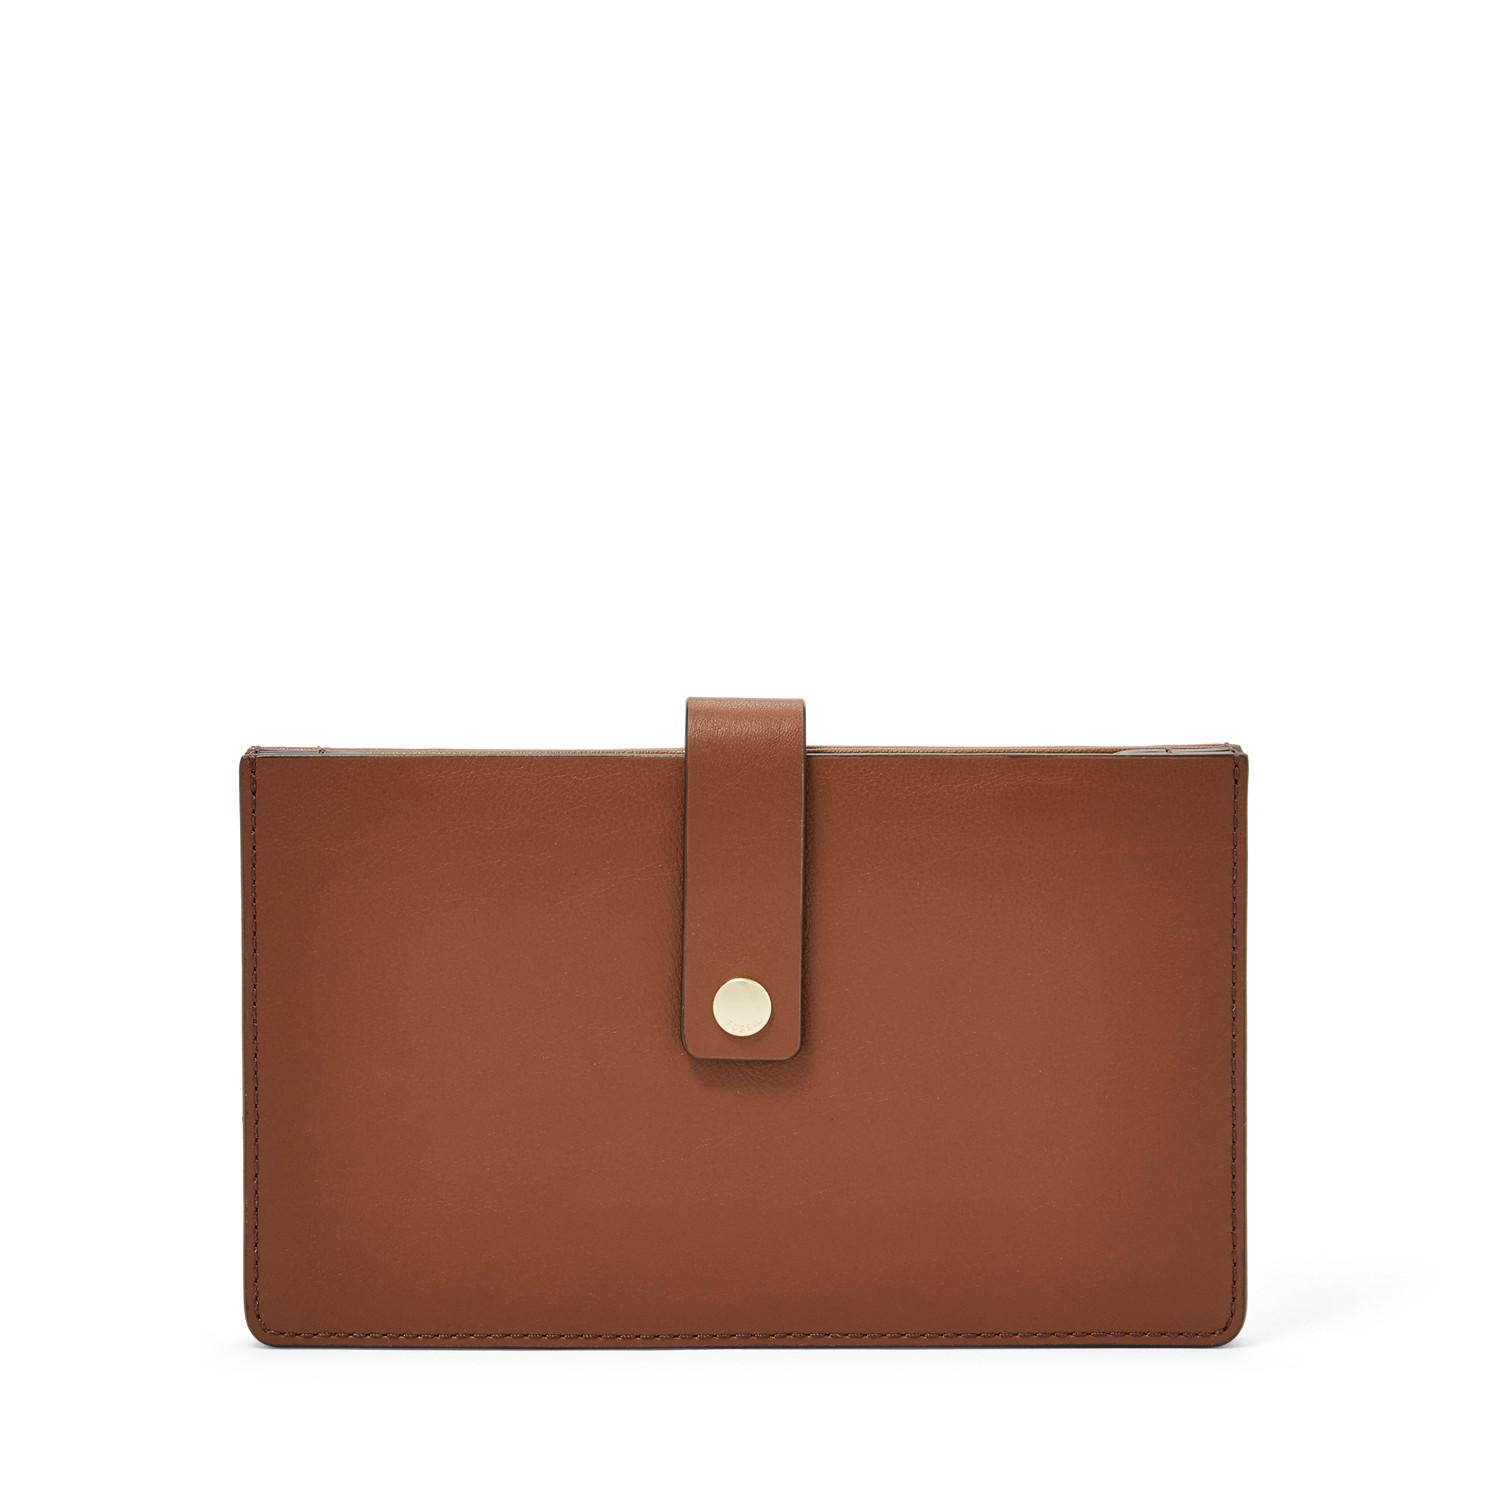 Fossil - Vale Medium - Wallet Leather - Brown - Dompet Wanita - SL7556-200 6303d4b160